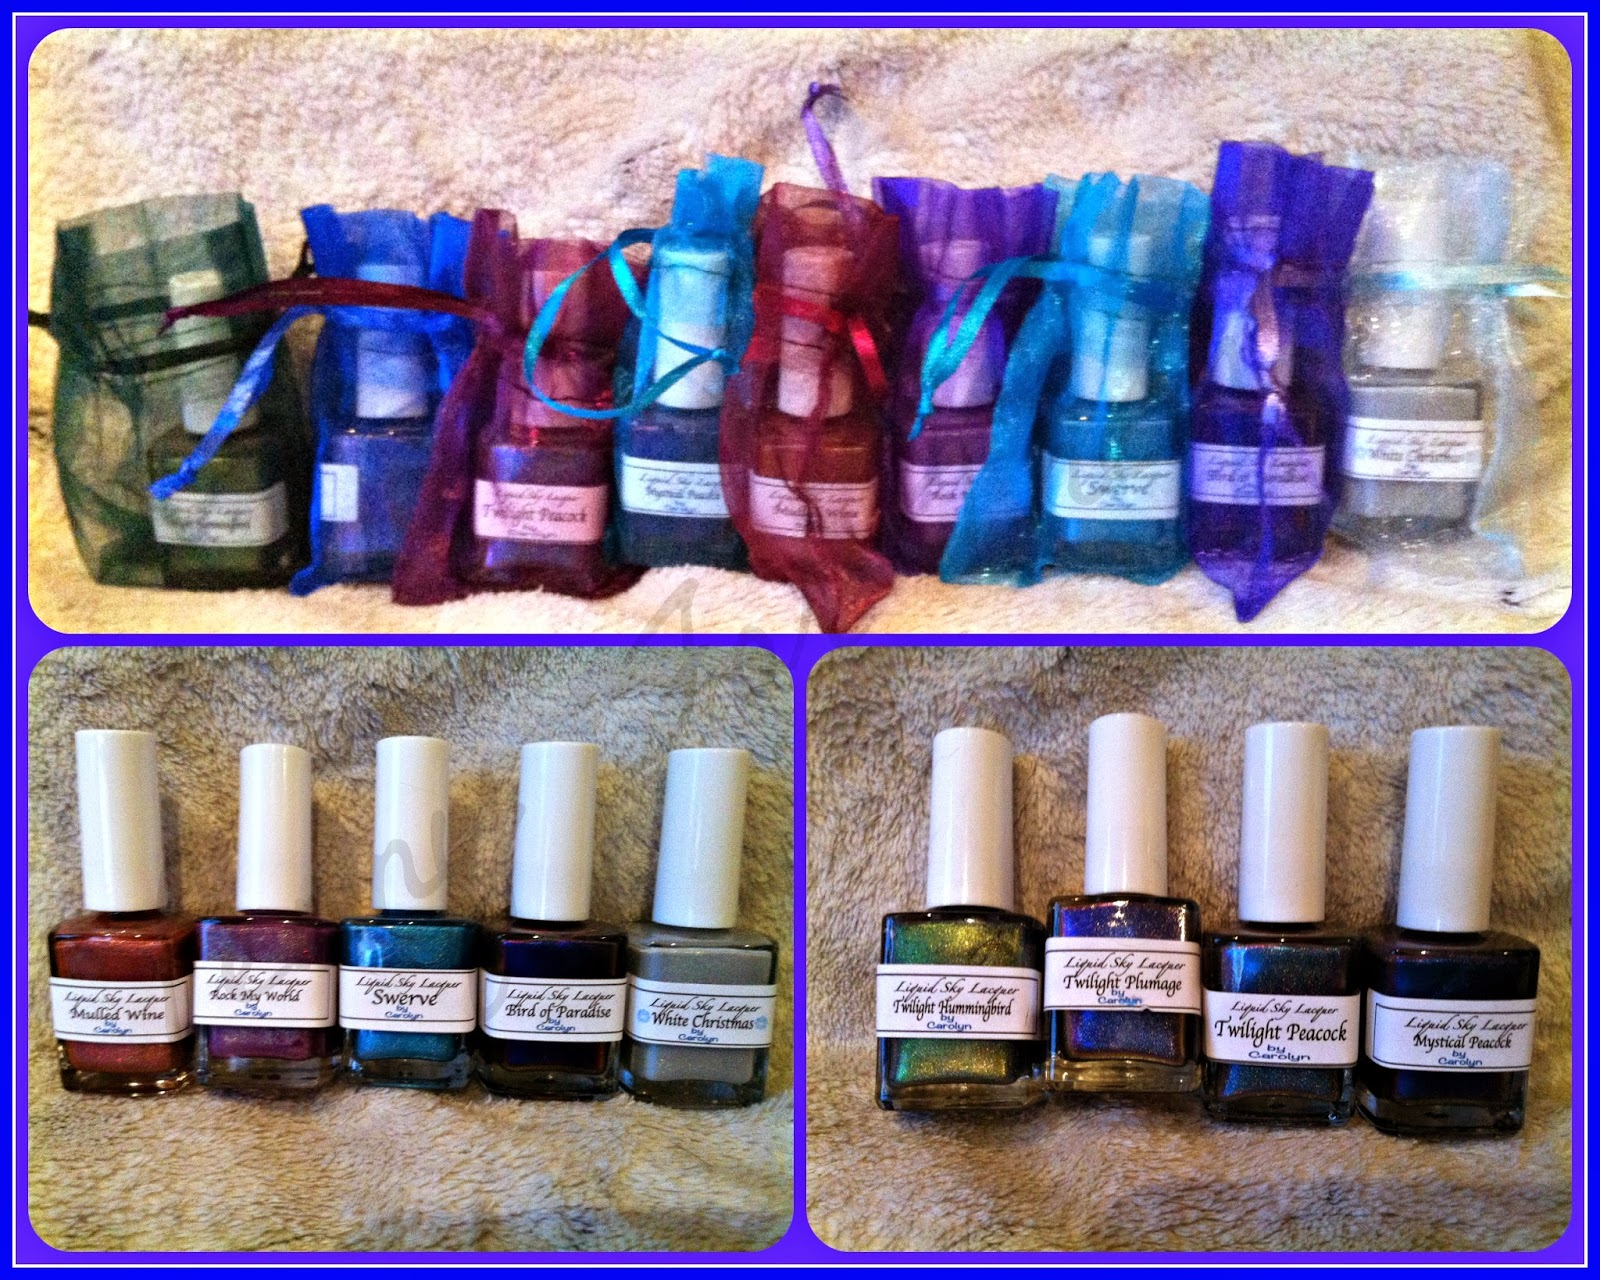 Lots of Luscious Liquid Sky Lacquer to Ogle! ~ Penny For Them....